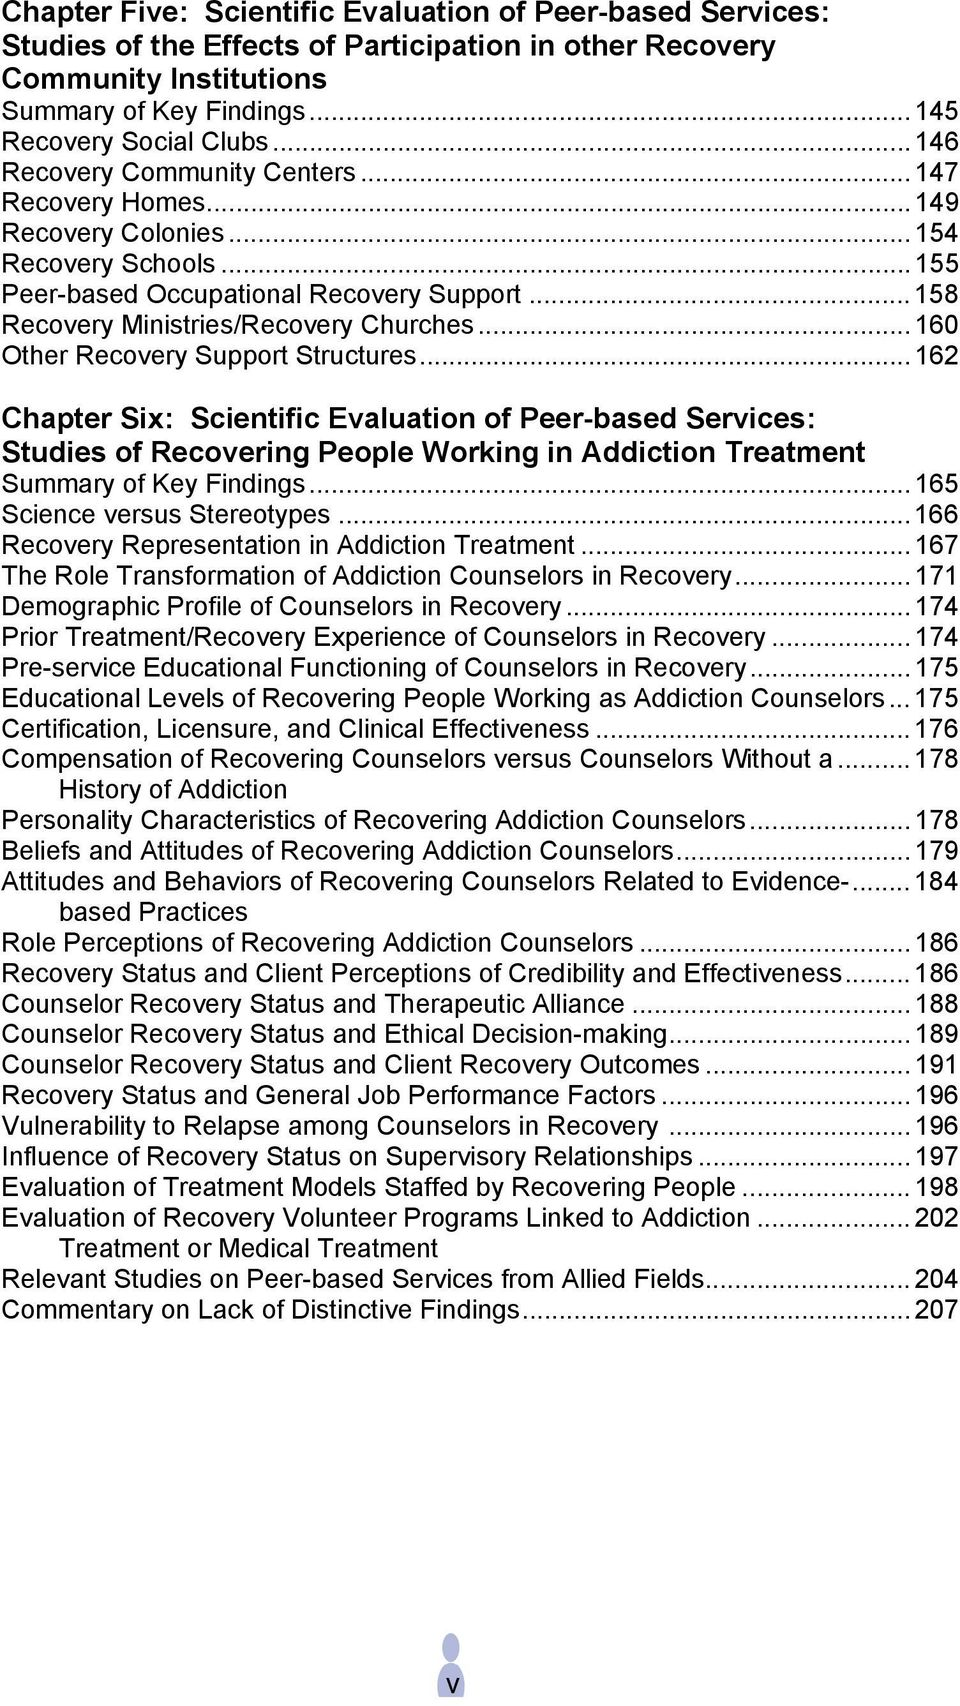 .. 160 Other Recovery Support Structures... 162 Chapter Six: Scientific Evaluation of Peer-based Services: Studies of Recovering People Working in Addiction Treatment Summary of Key Findings.